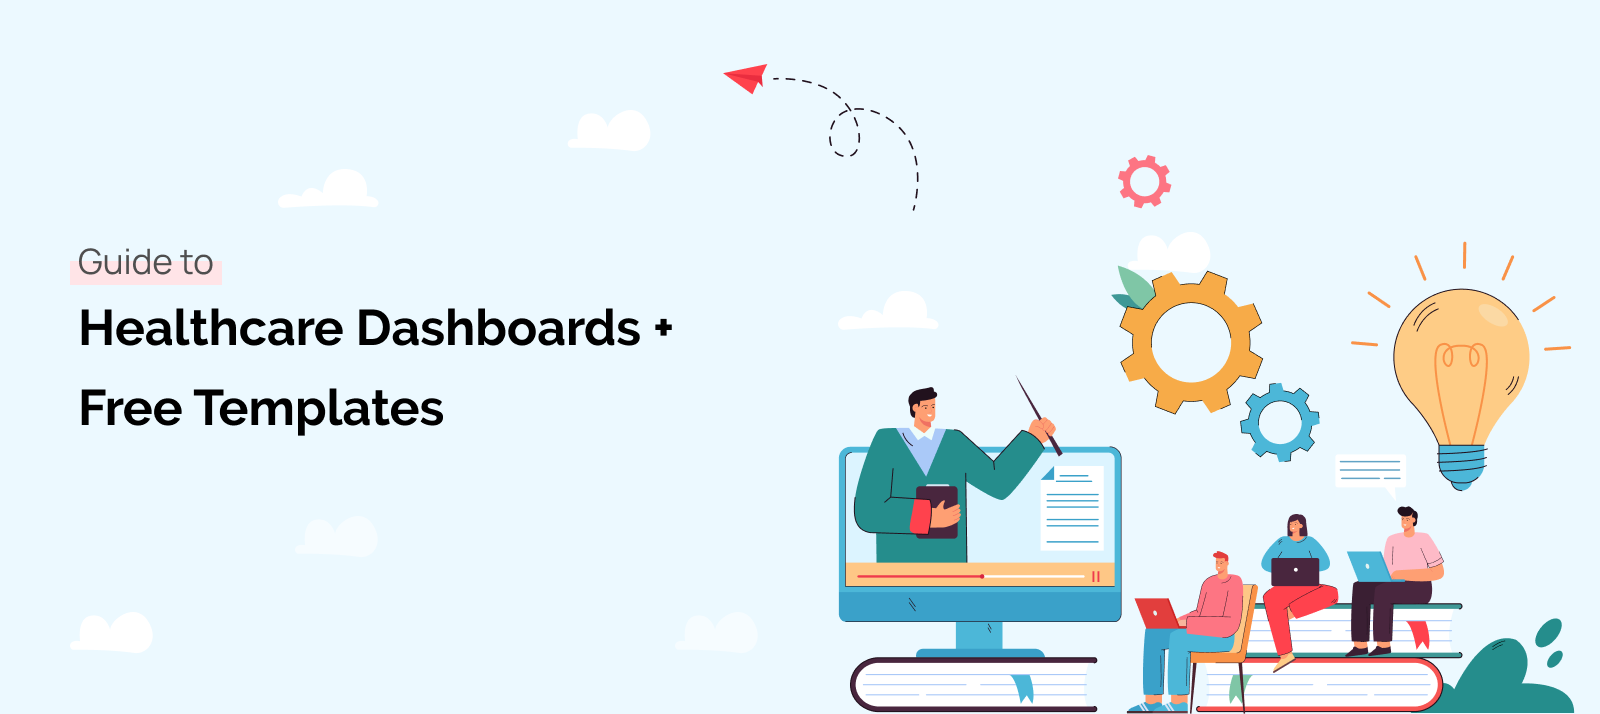 Guide to Healthcare Dashboards + Free Templates